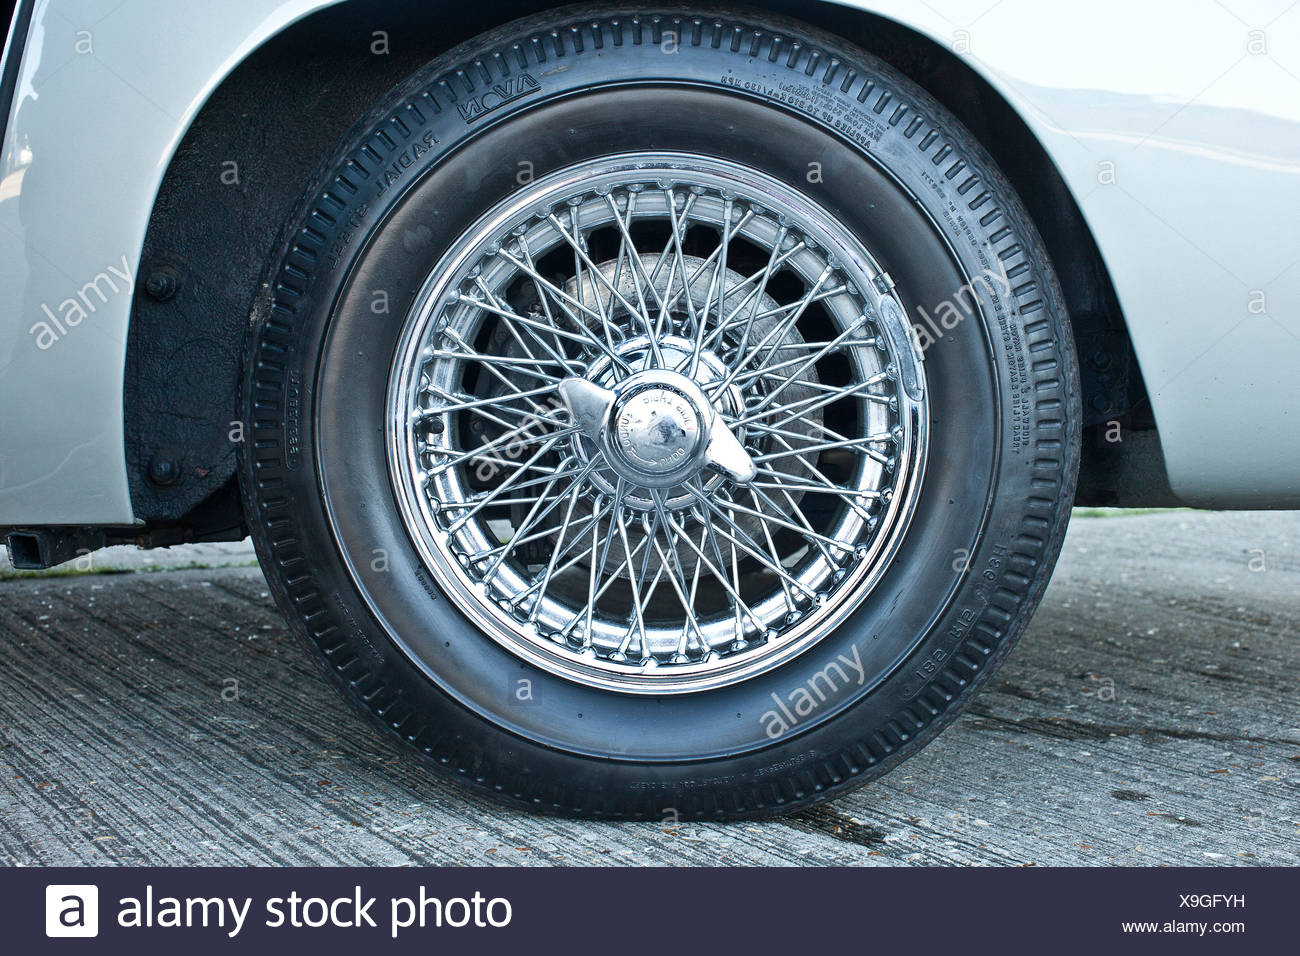 Vintage Auto Spoke Wheel Stock Photos & Vintage Auto Spoke Wheel ...